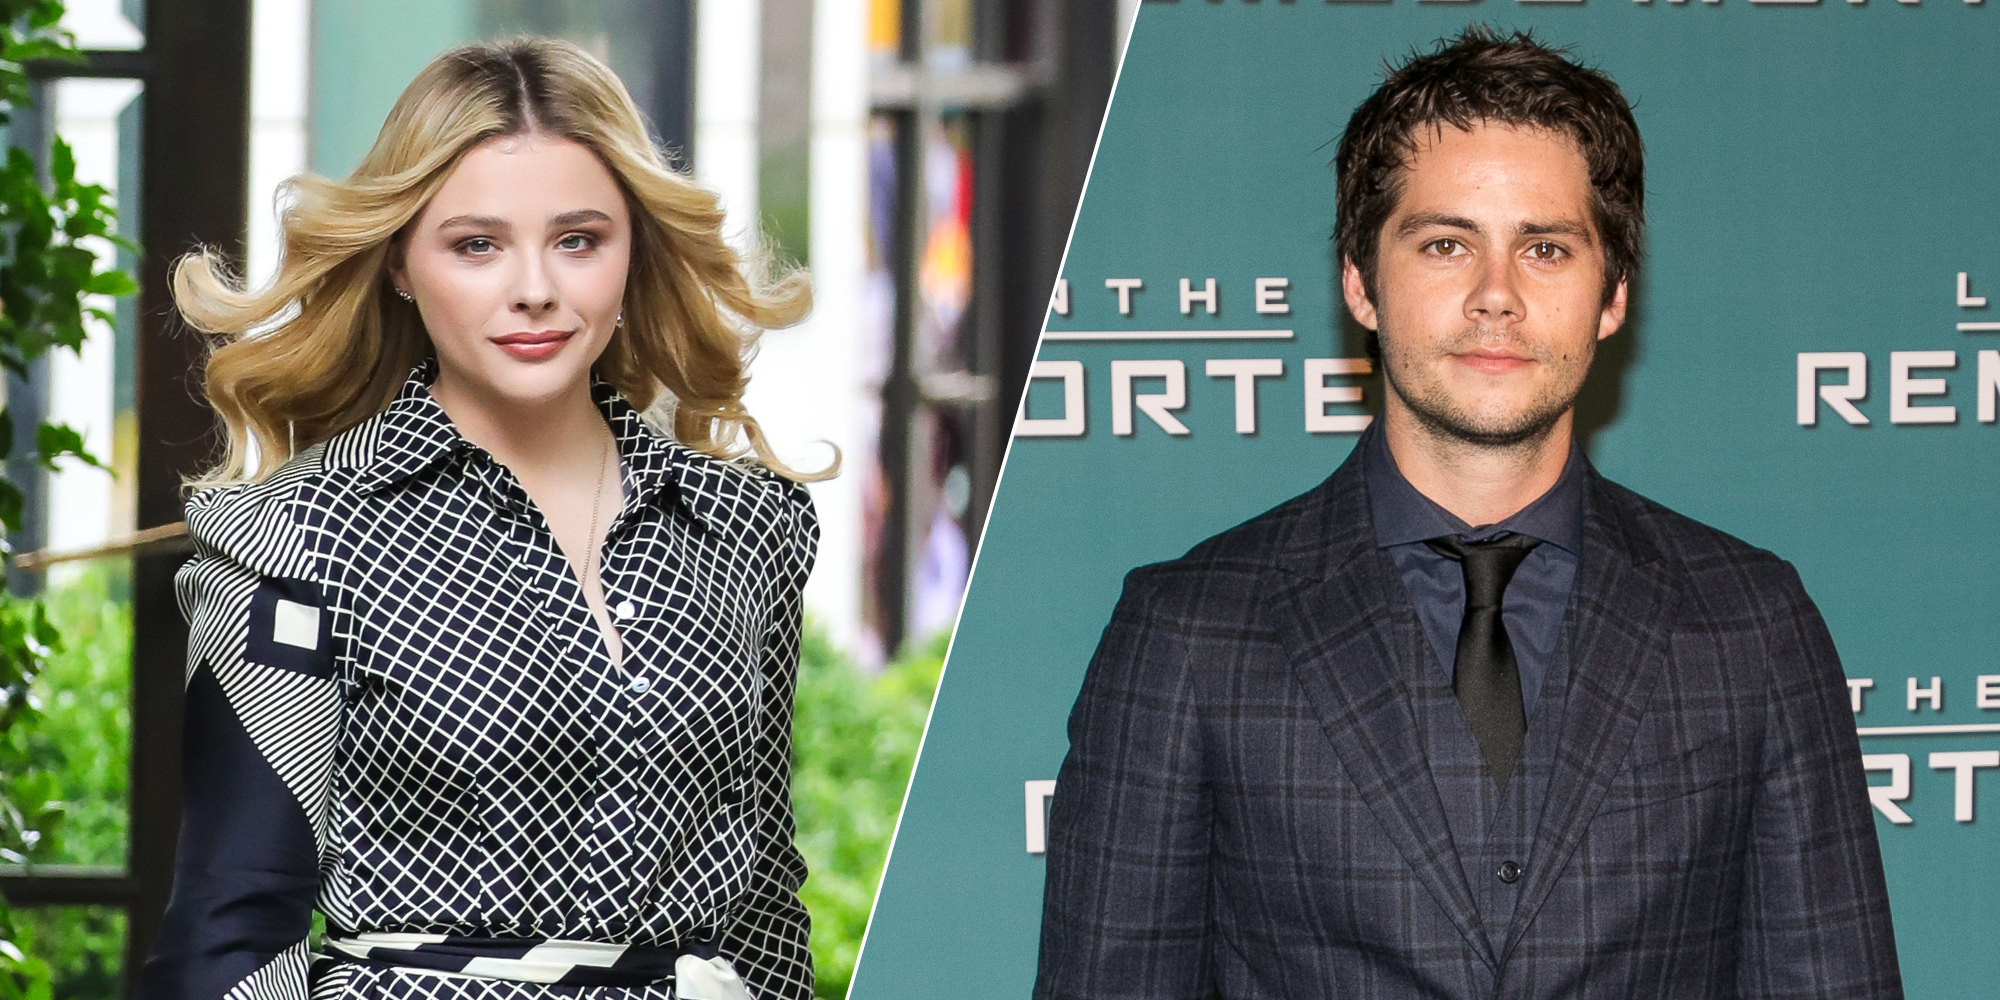 Chloë Moretz And Dylan Obrien Are Reportedly Dating Seven Years